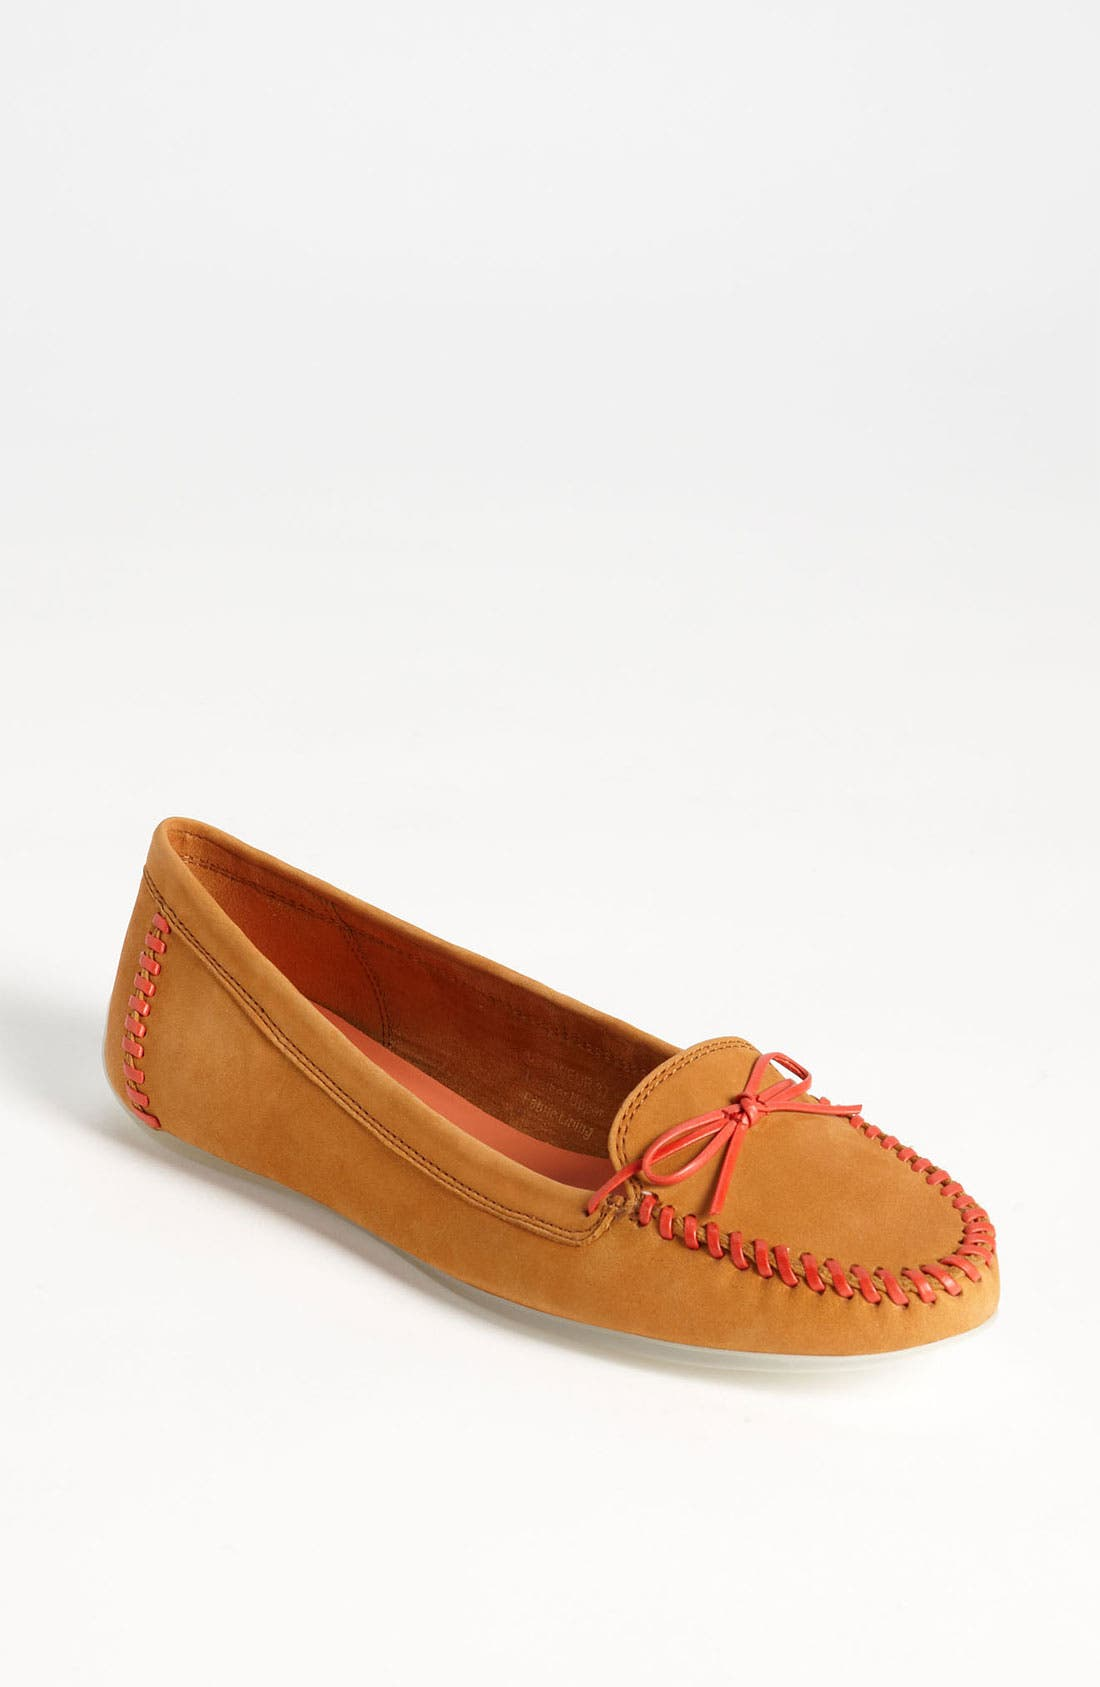 Main Image - Via Spiga 'Kate' Loafer